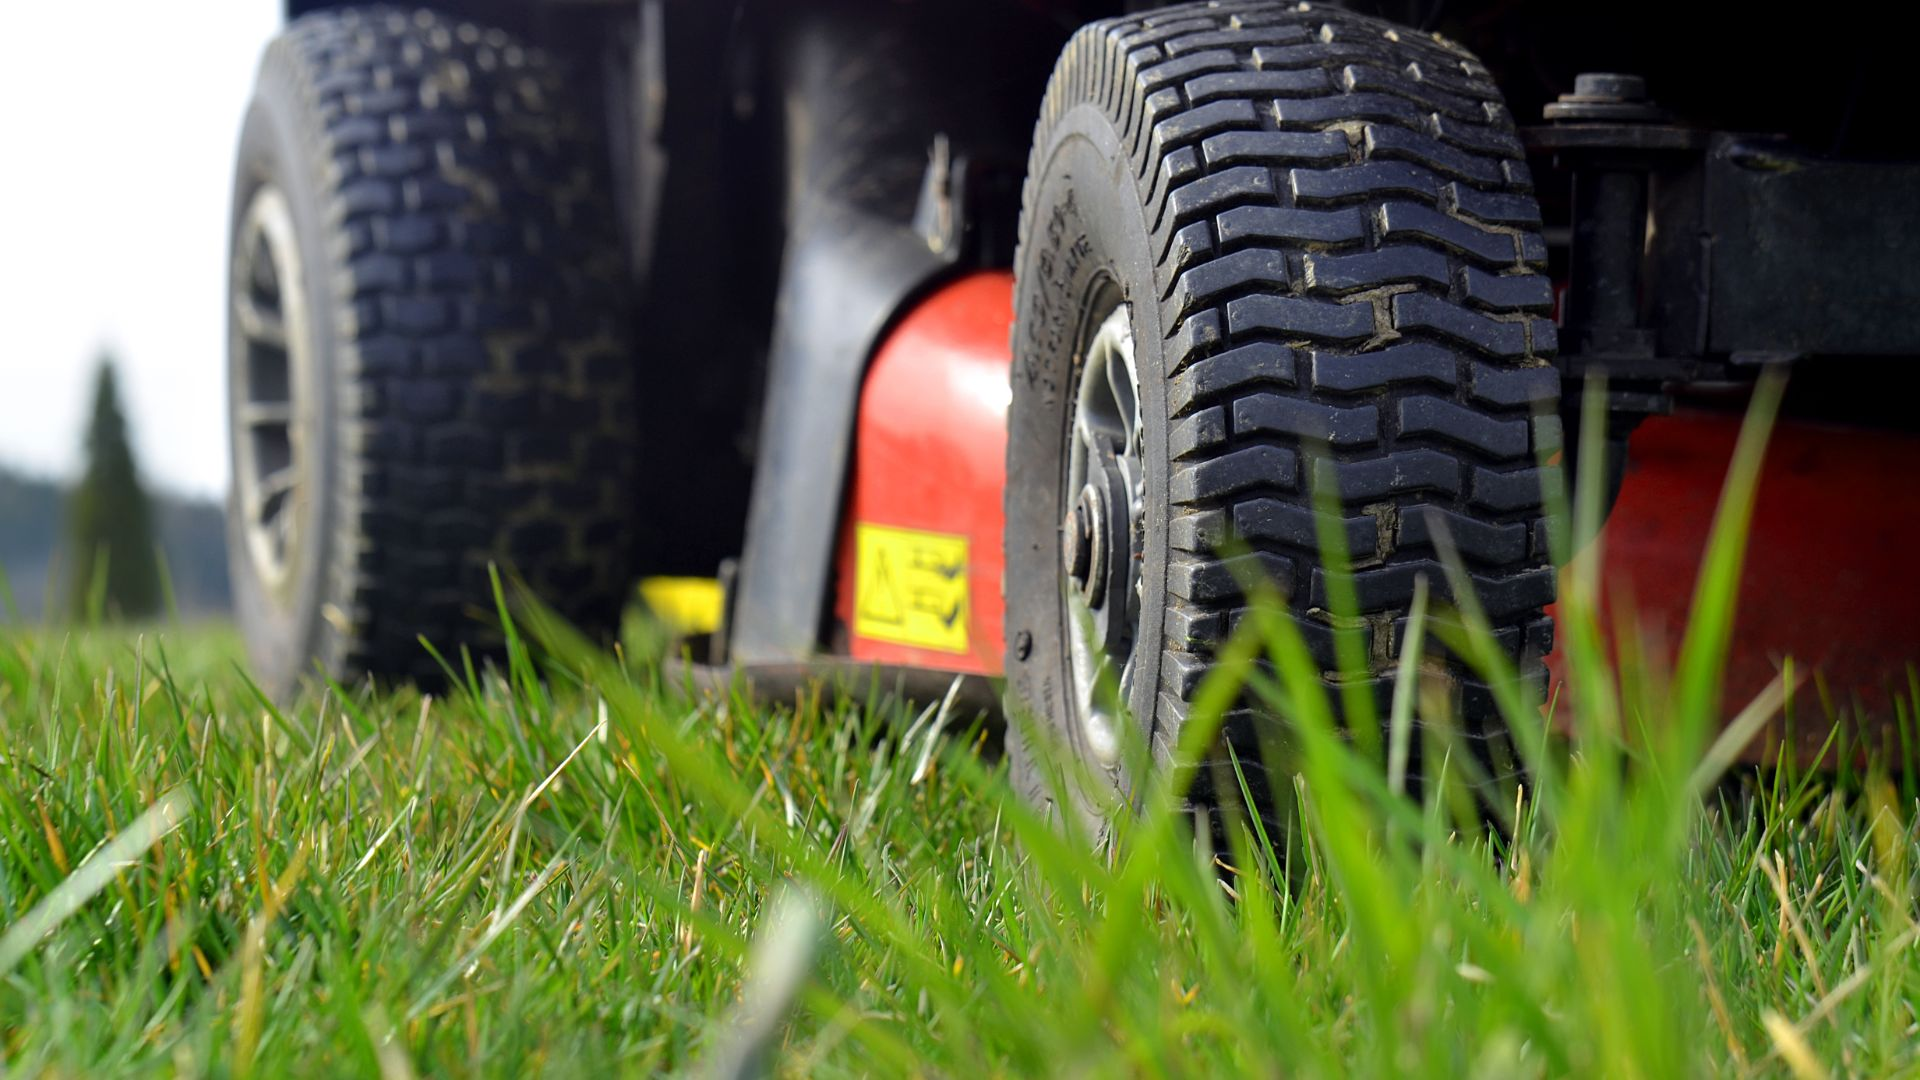 Close up of a lawnmower's tires in grass in Dewitt, MI.